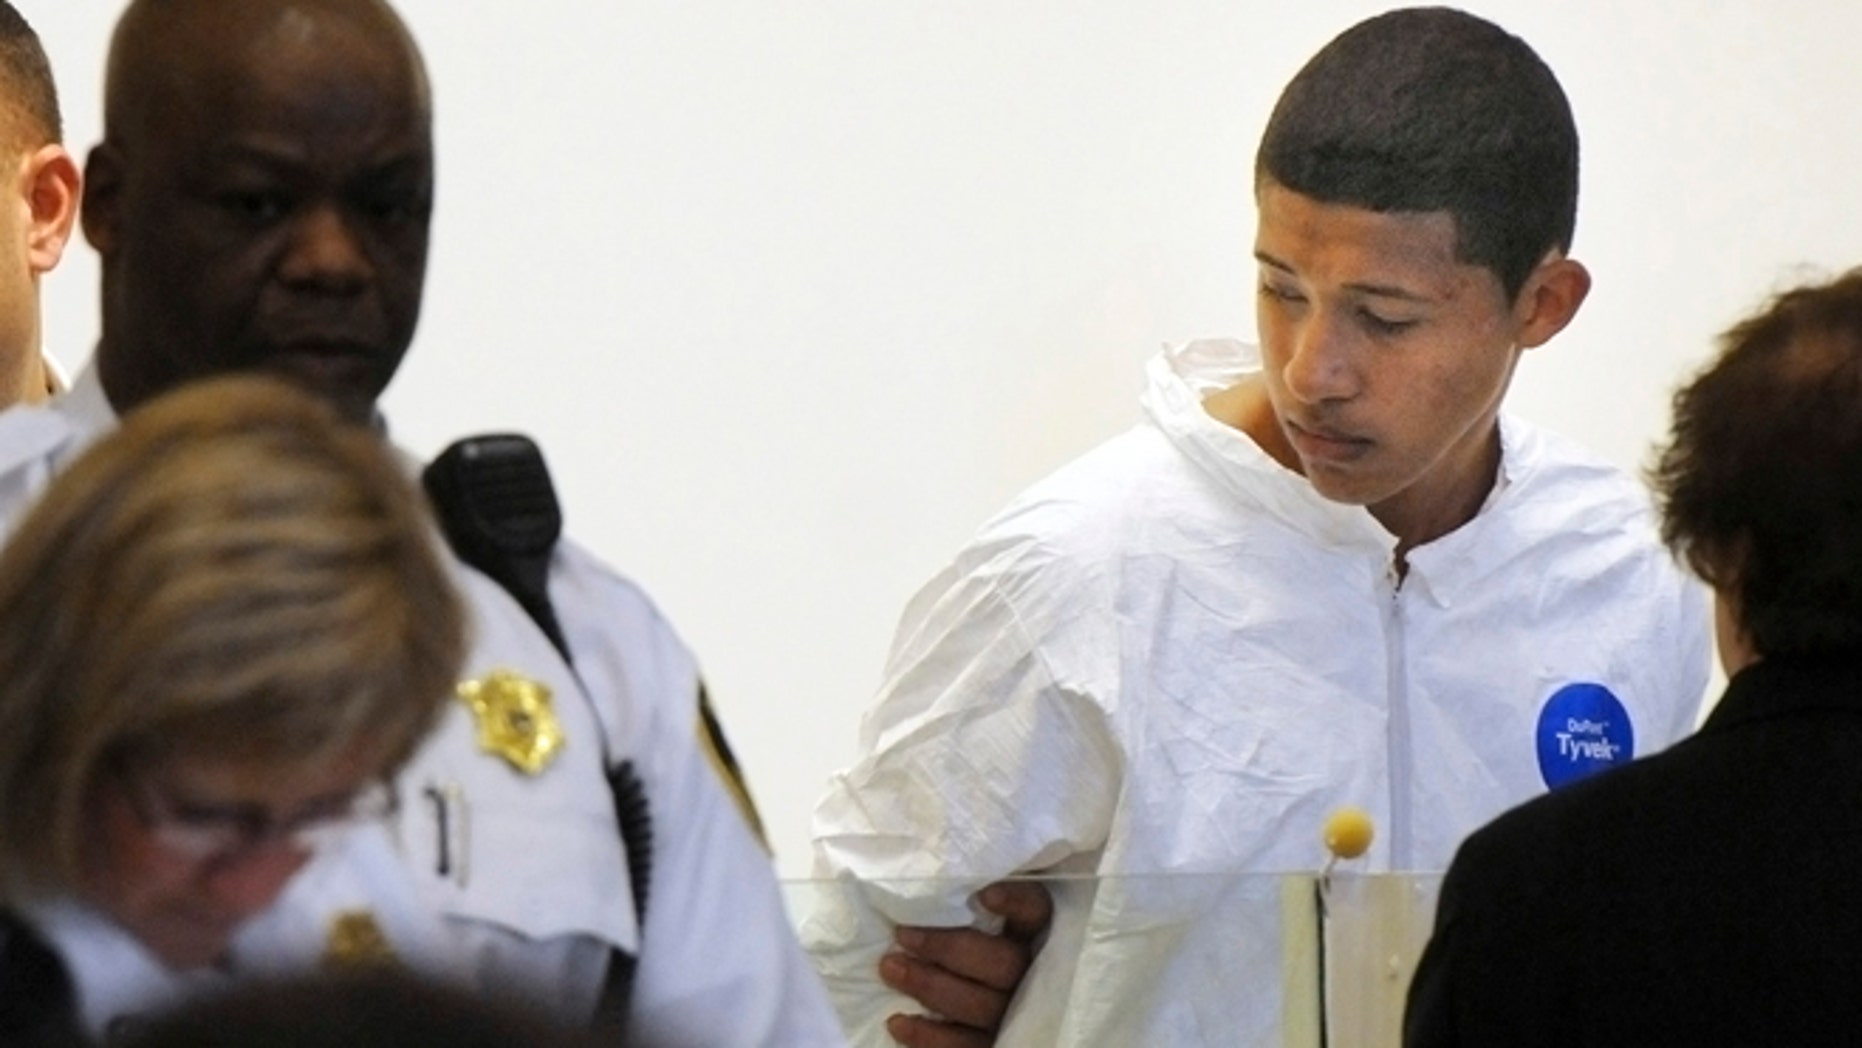 """FILE: According to the petition to have Philip Chism committed to Worcester Recovery Center and Hospital for 30 days of evaluation and treatment, the 15-year-old was """"out of touch with reality"""" and """"yelling, screaming incoherently (and) foaming at the mouth while being restrained by staff."""""""